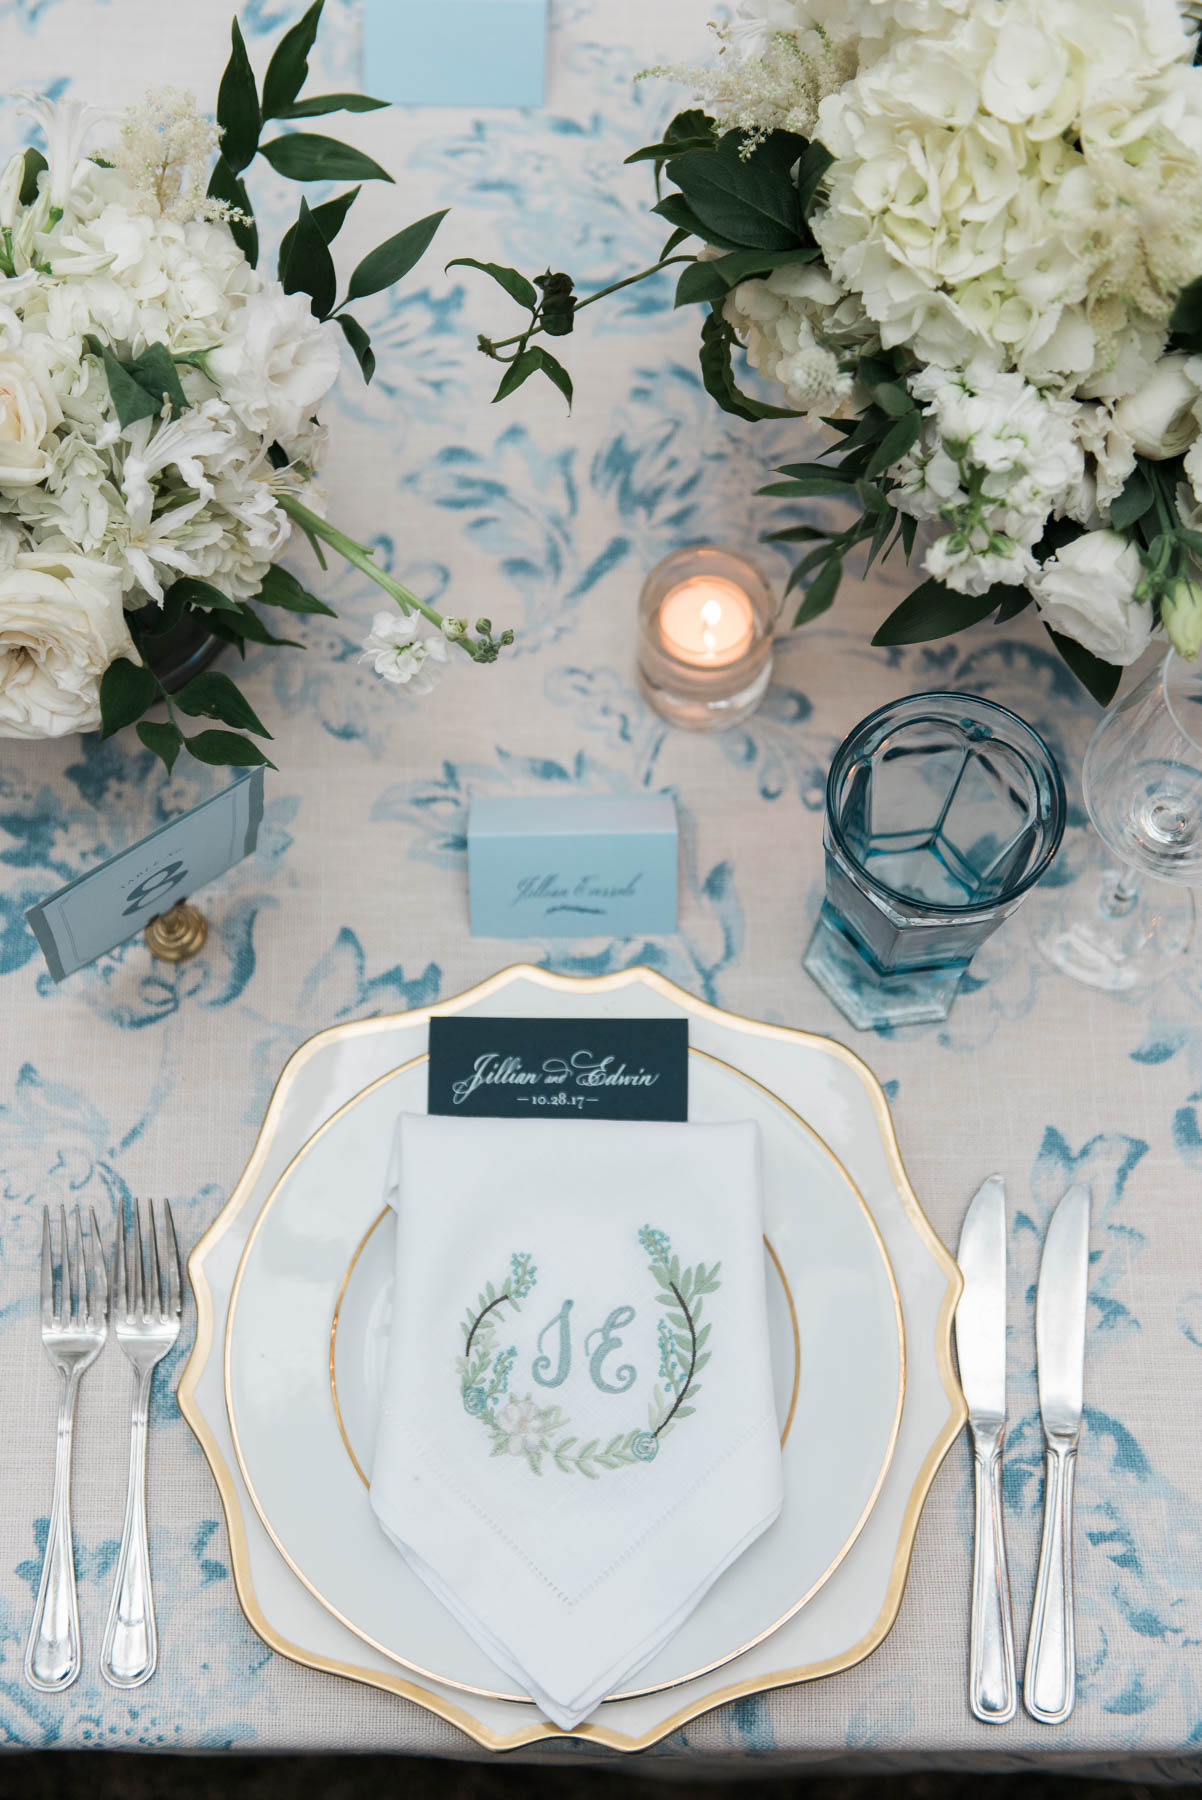 A monogrammed napkin at the bride's seat on her wedding day with a blue and white tablescape // Rhyme & Reason